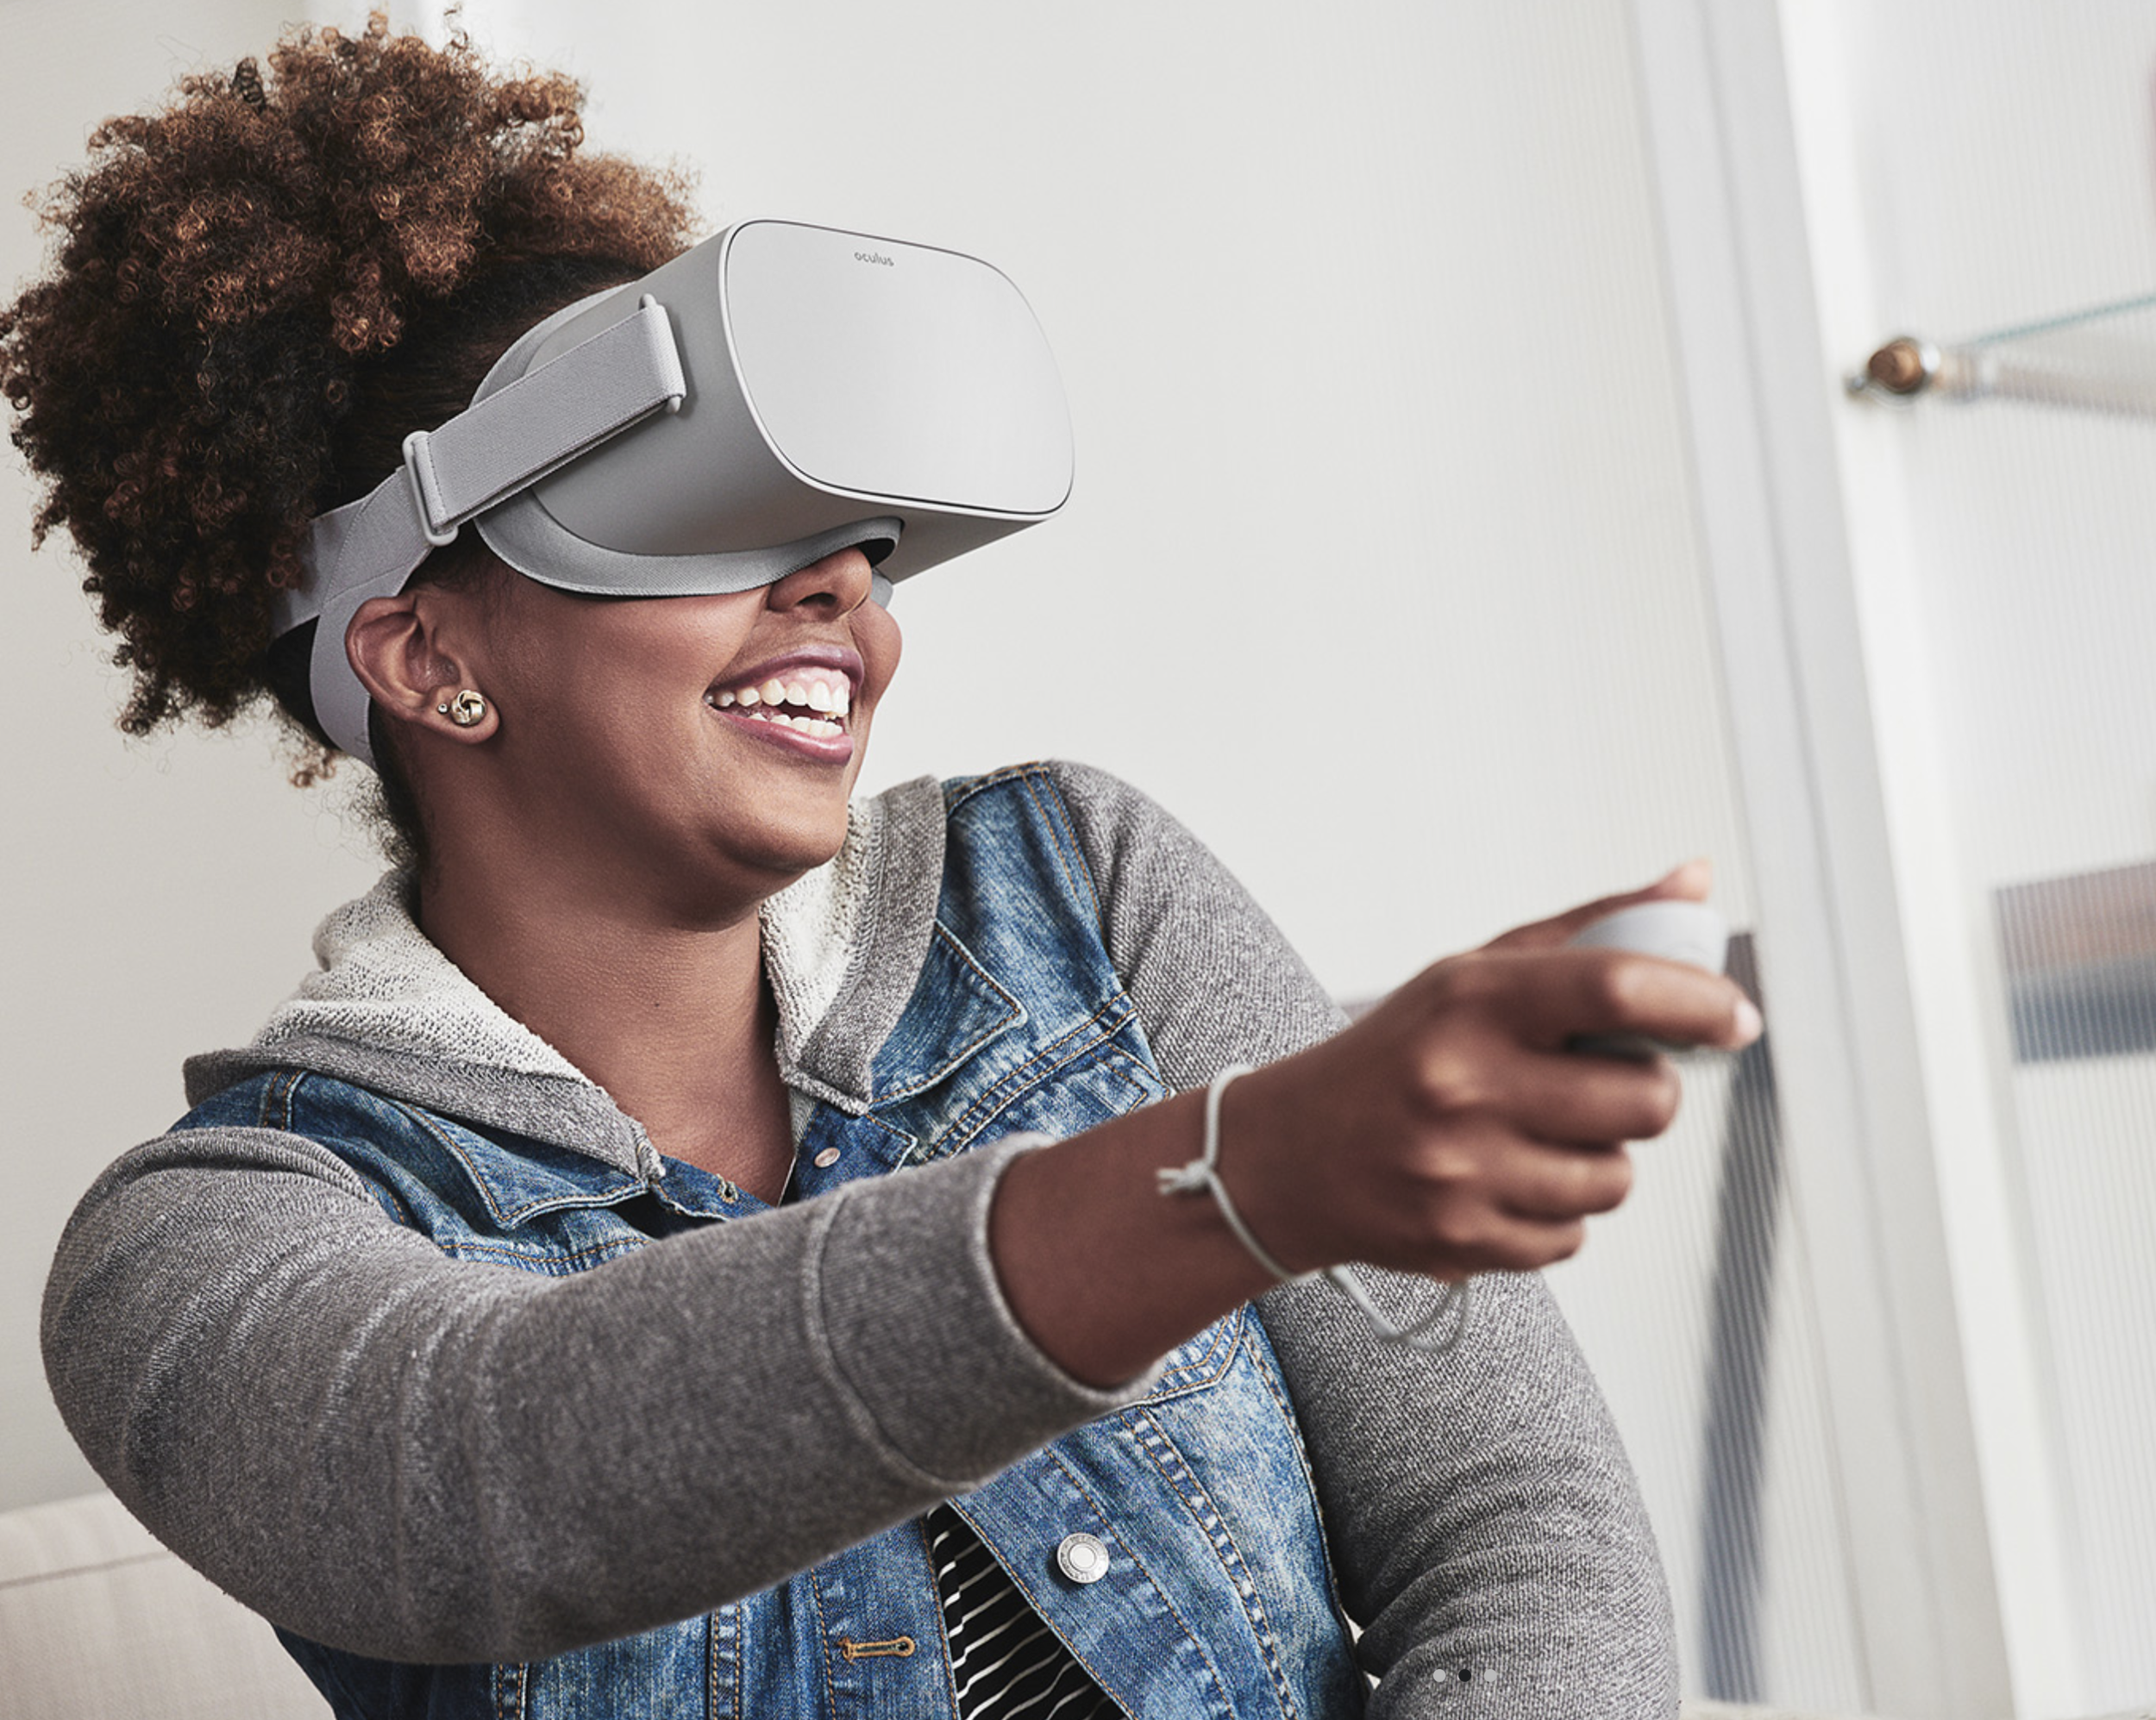 Trying out Oculus Go